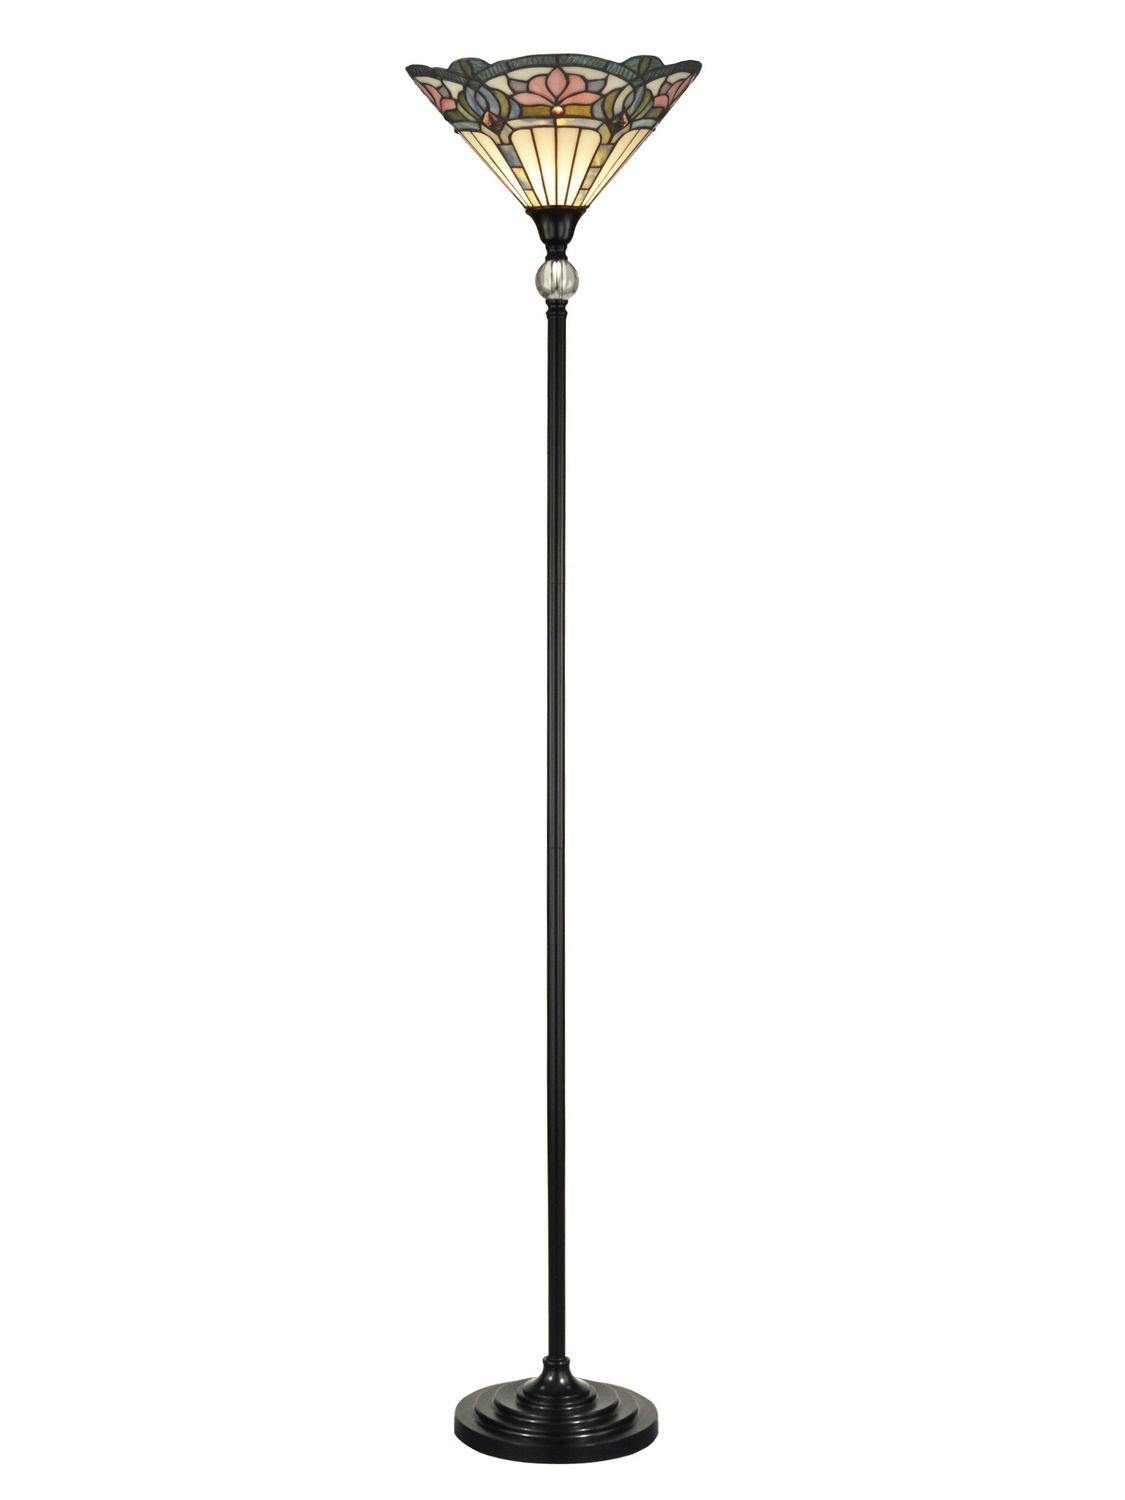 Home Lighting Fixtures At Idlewood Torchiere Floor Lamp Bronze Floor Lamp Dale Tiffany